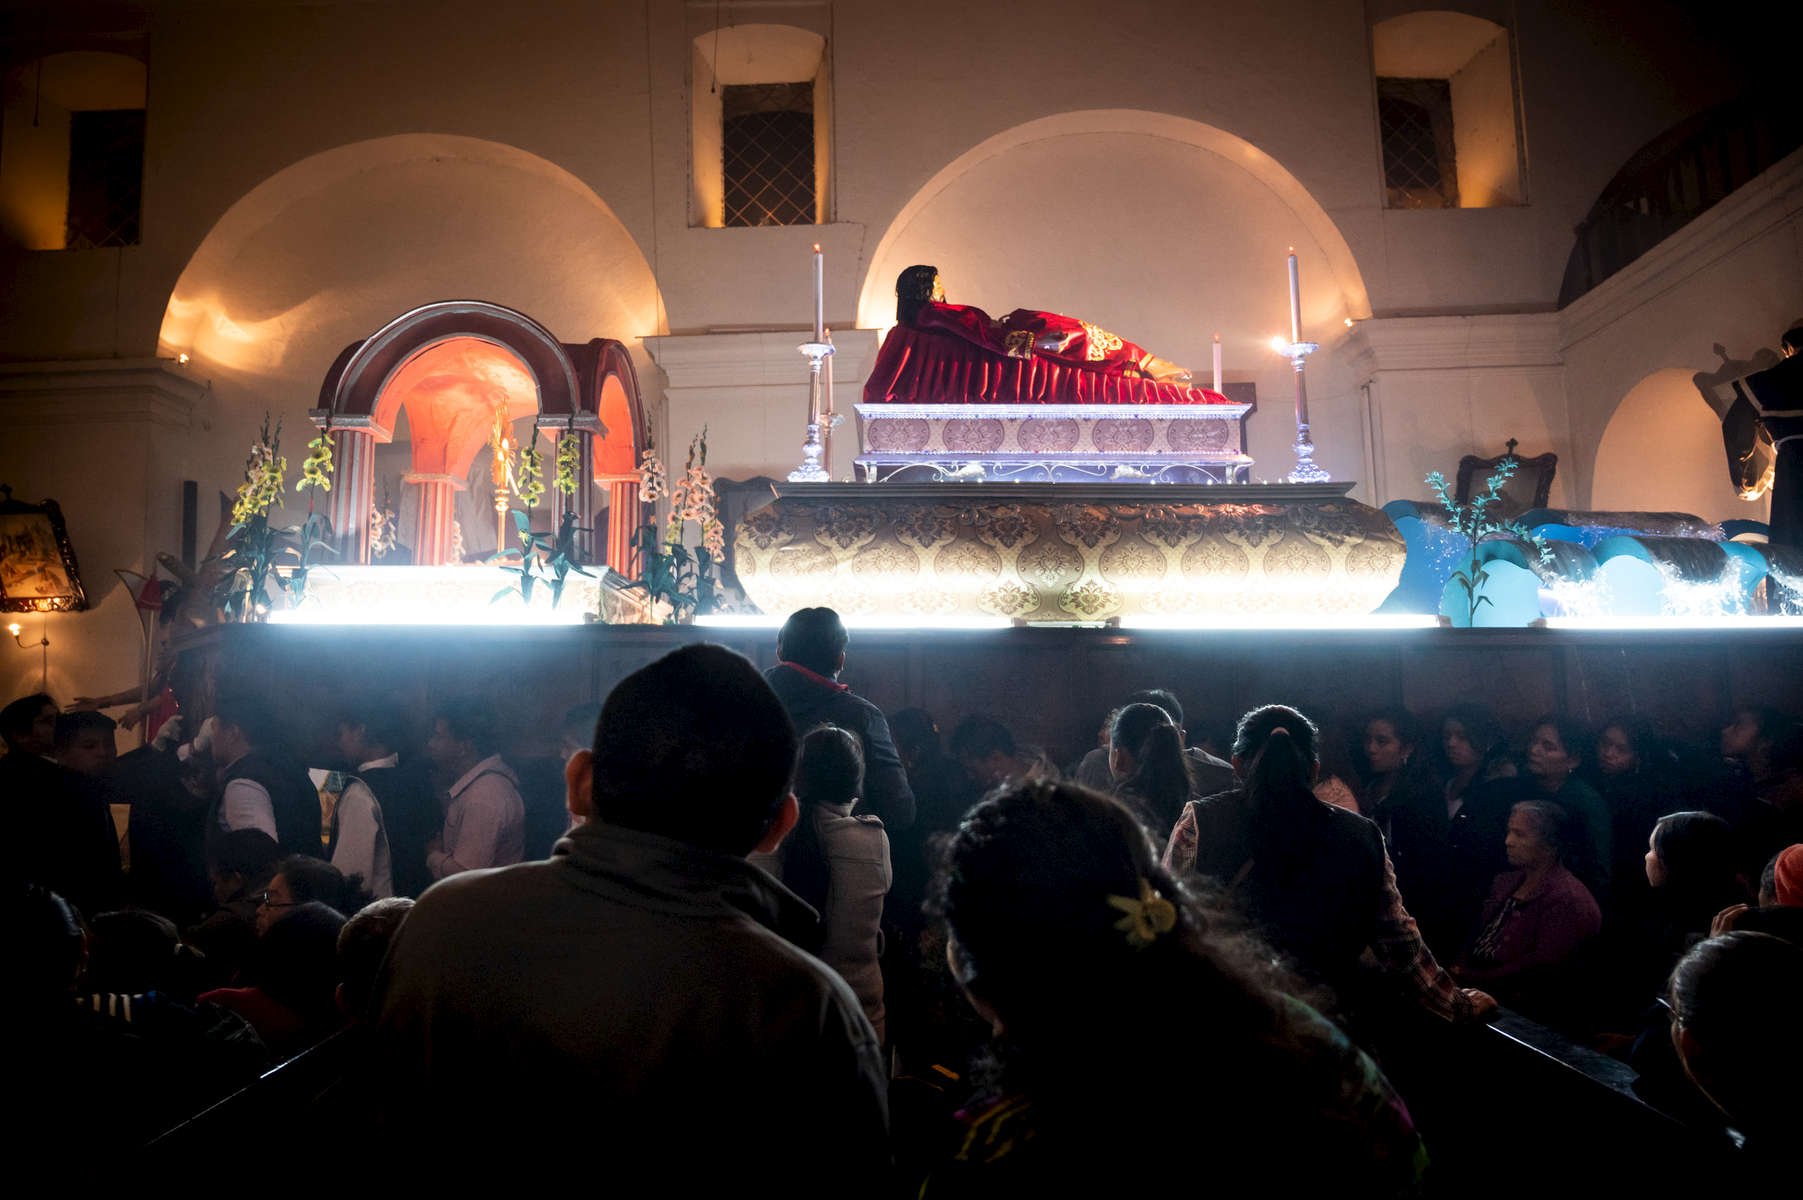 Catholic worshippers watch as the anda with the body of Jesus Christ is brought into the church on April 20, 2019.